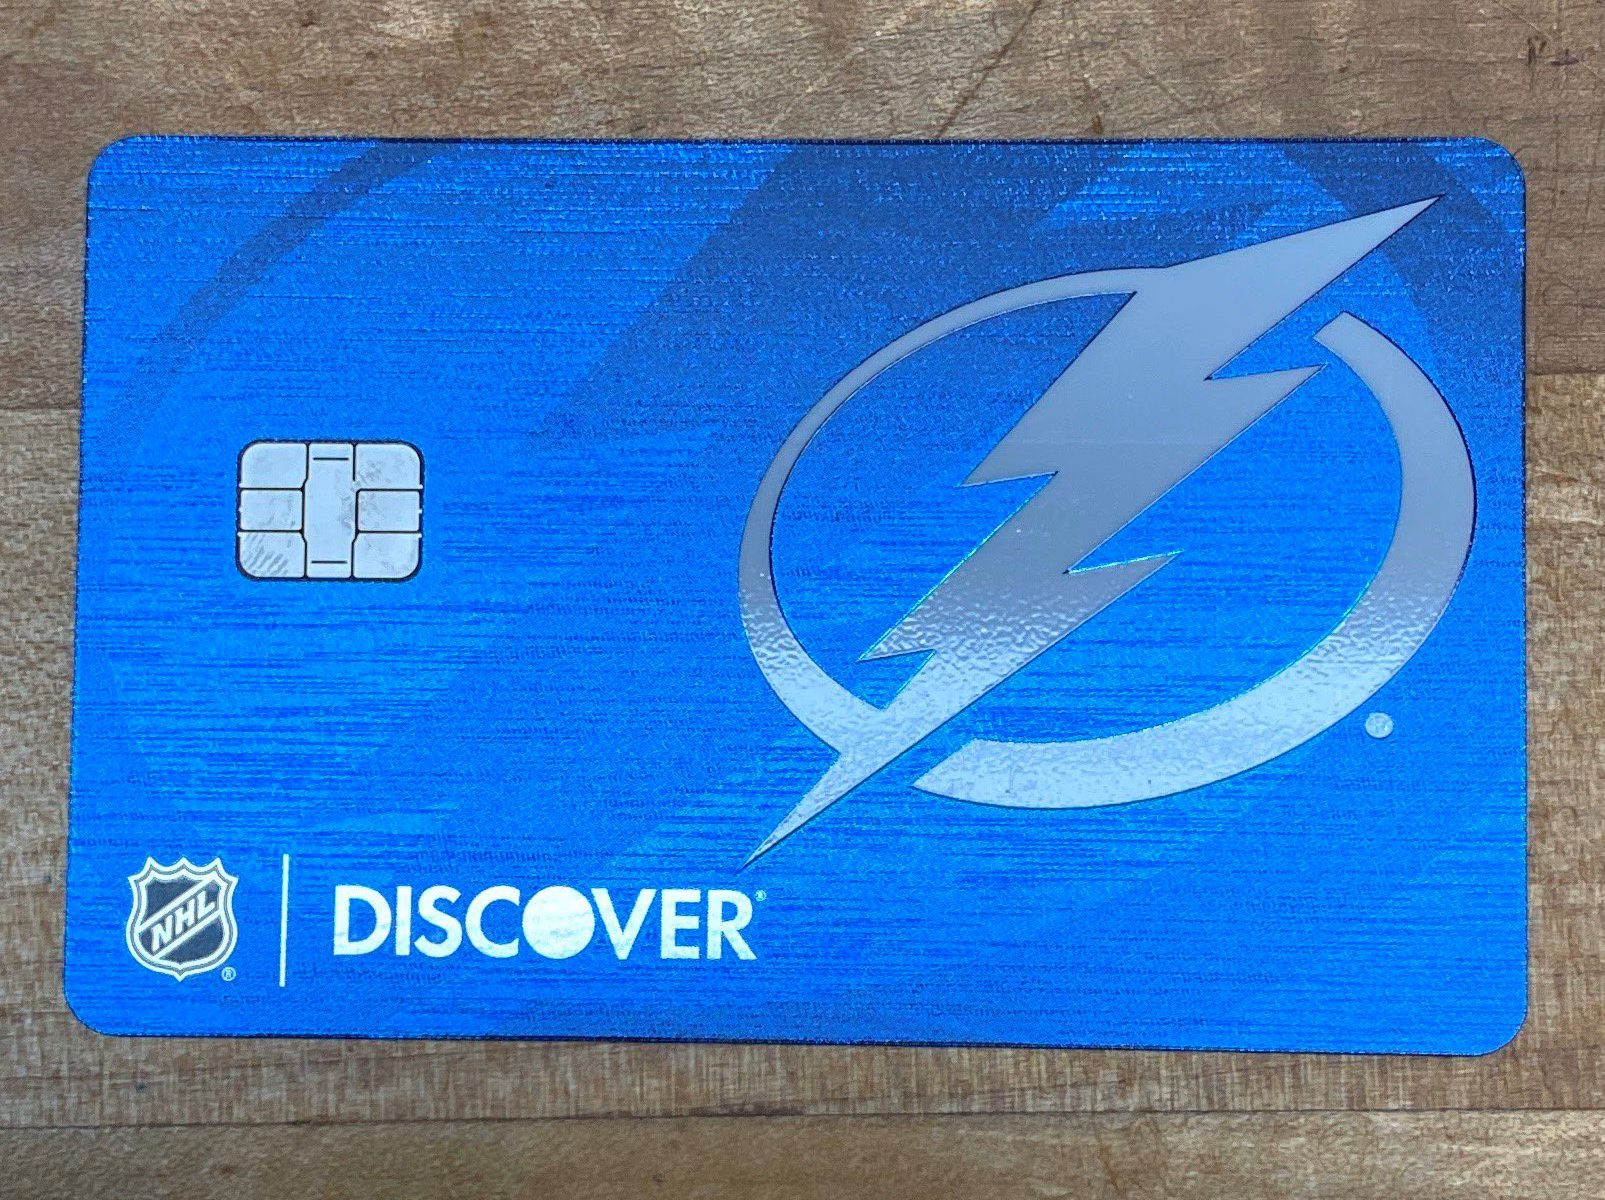 Discover Cards Cash-Back Rewards Strategy To Become Fourth-Largest Credit Issuer-fig 2